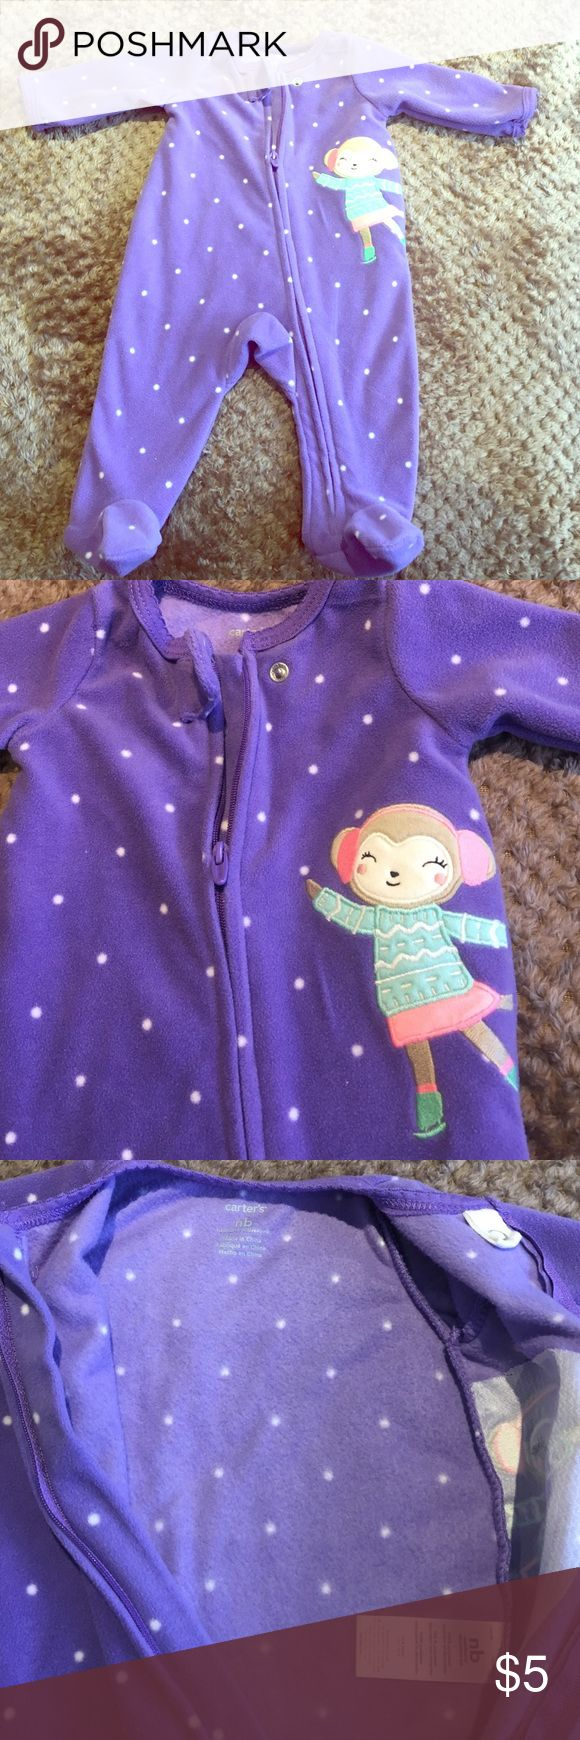 Fleece Zip-Up Sleep and Play Purple crafted in a snugly fleece with polka dots and an doll appliqué on left side! Zip up design makes for quick changes and easy dressing! Only used a few times! No stains Carter's One Pieces Footies